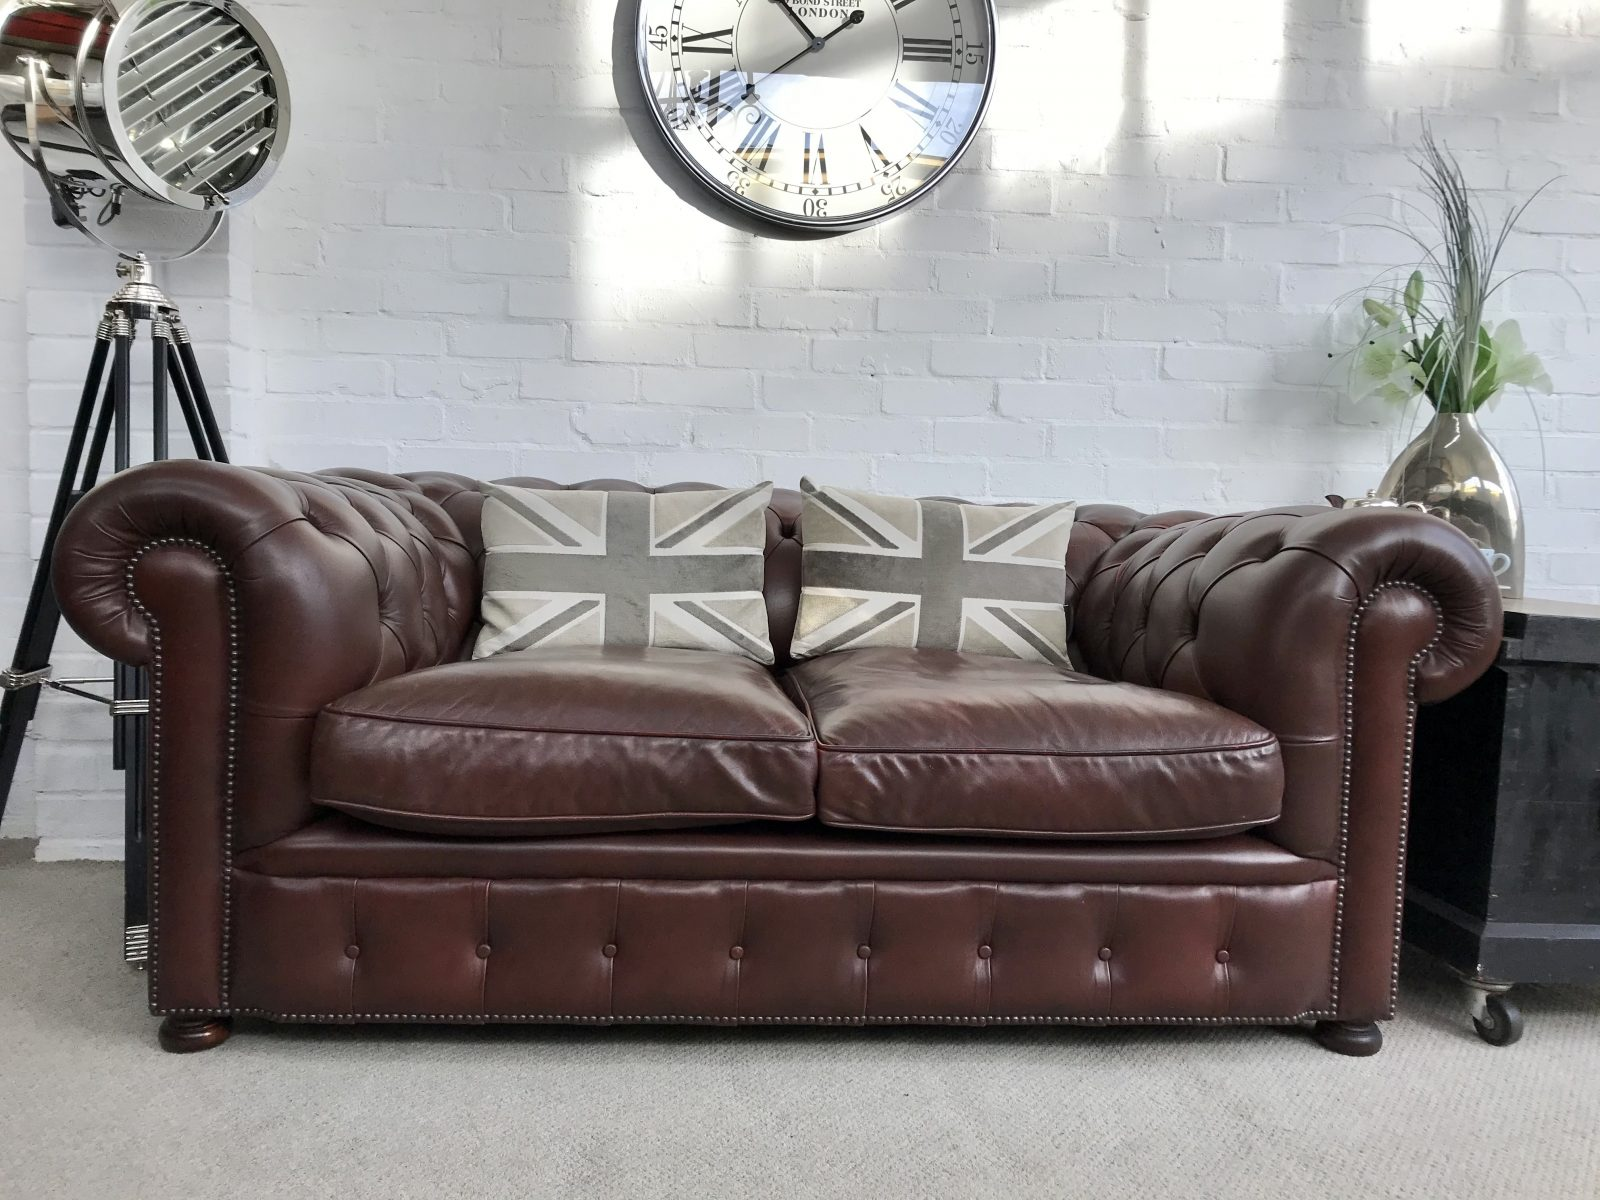 Stunning Rustic Brown Chesterfield Sofa.